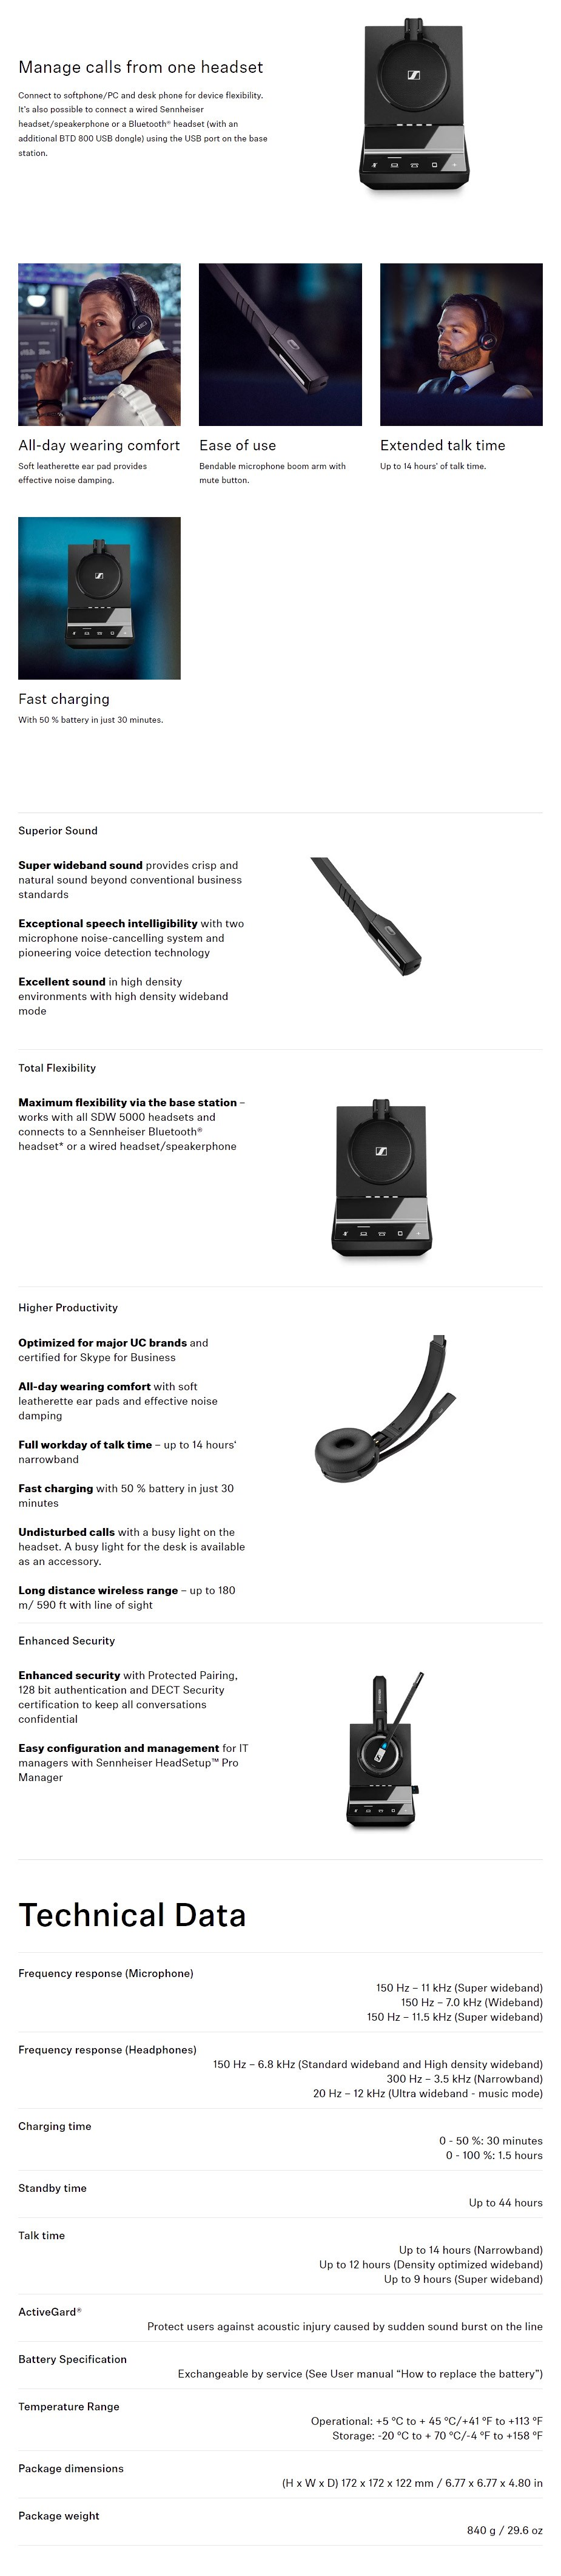 Sennheiser SDW 5035 DECT Wireless Headset with Base Station  - Overview 1